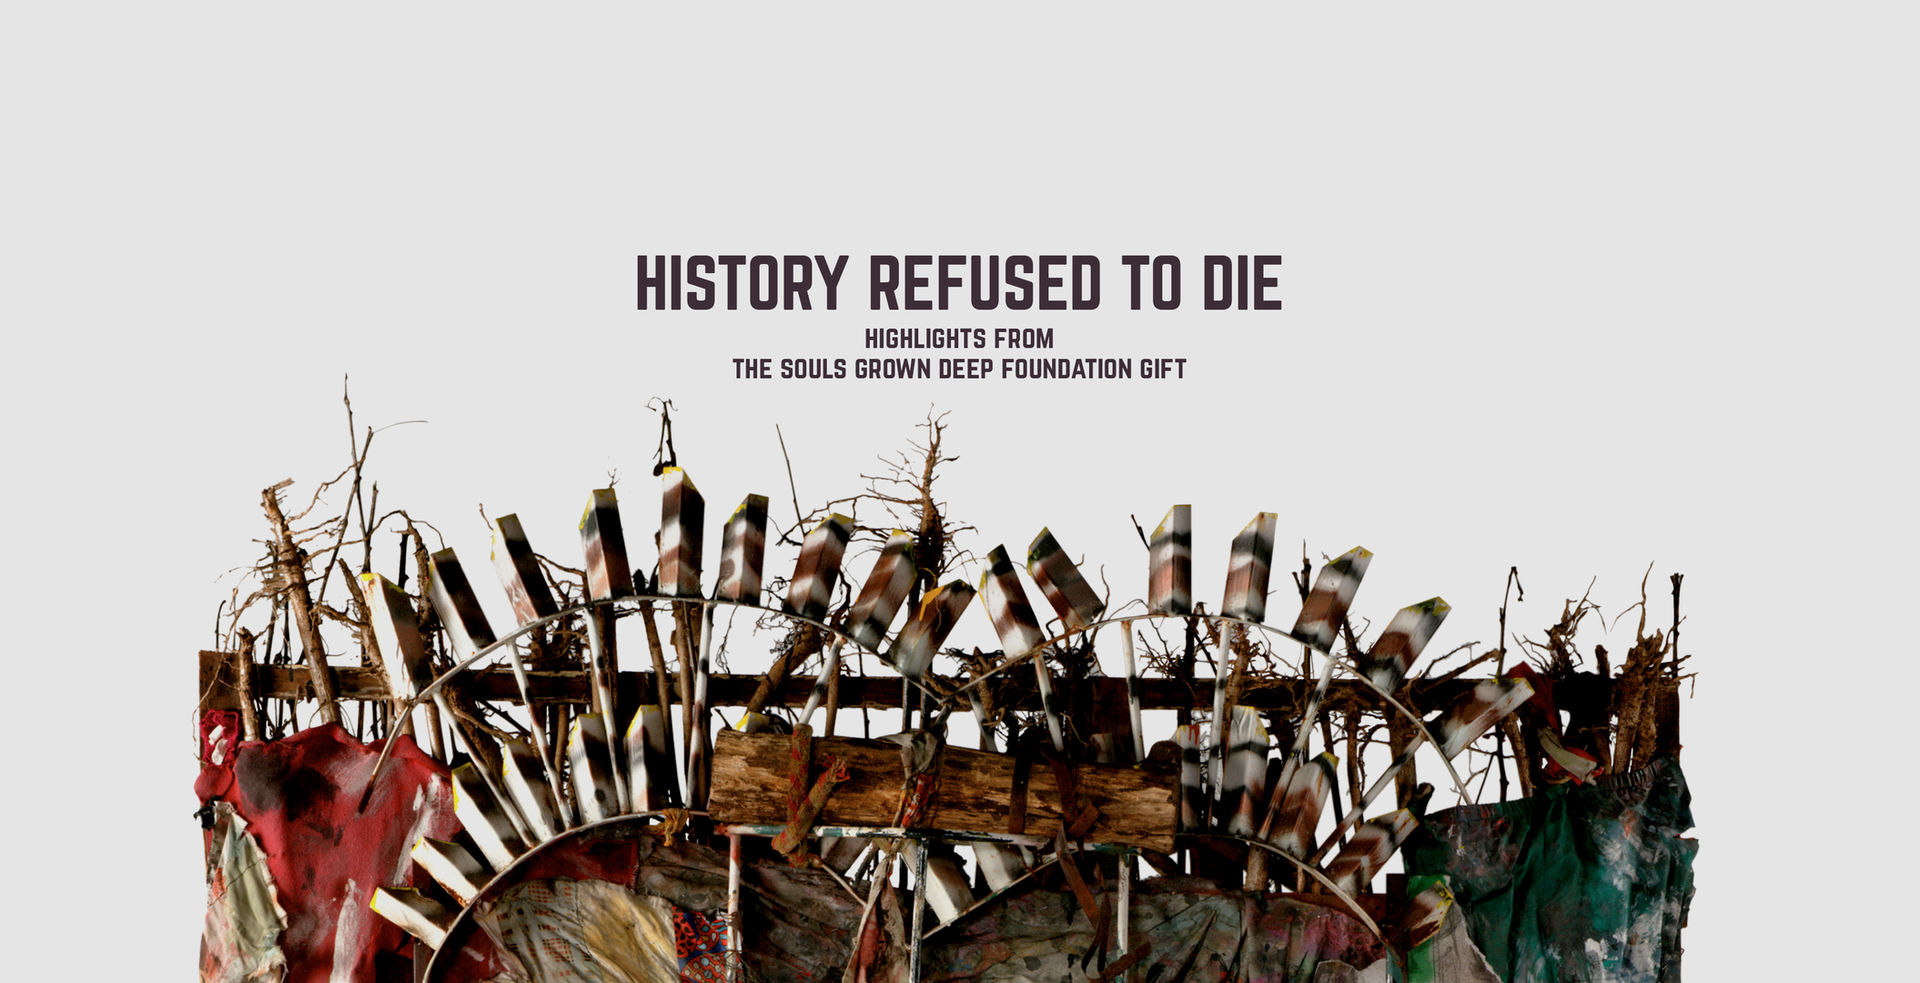 history refused to die highlights from the souls grown deep